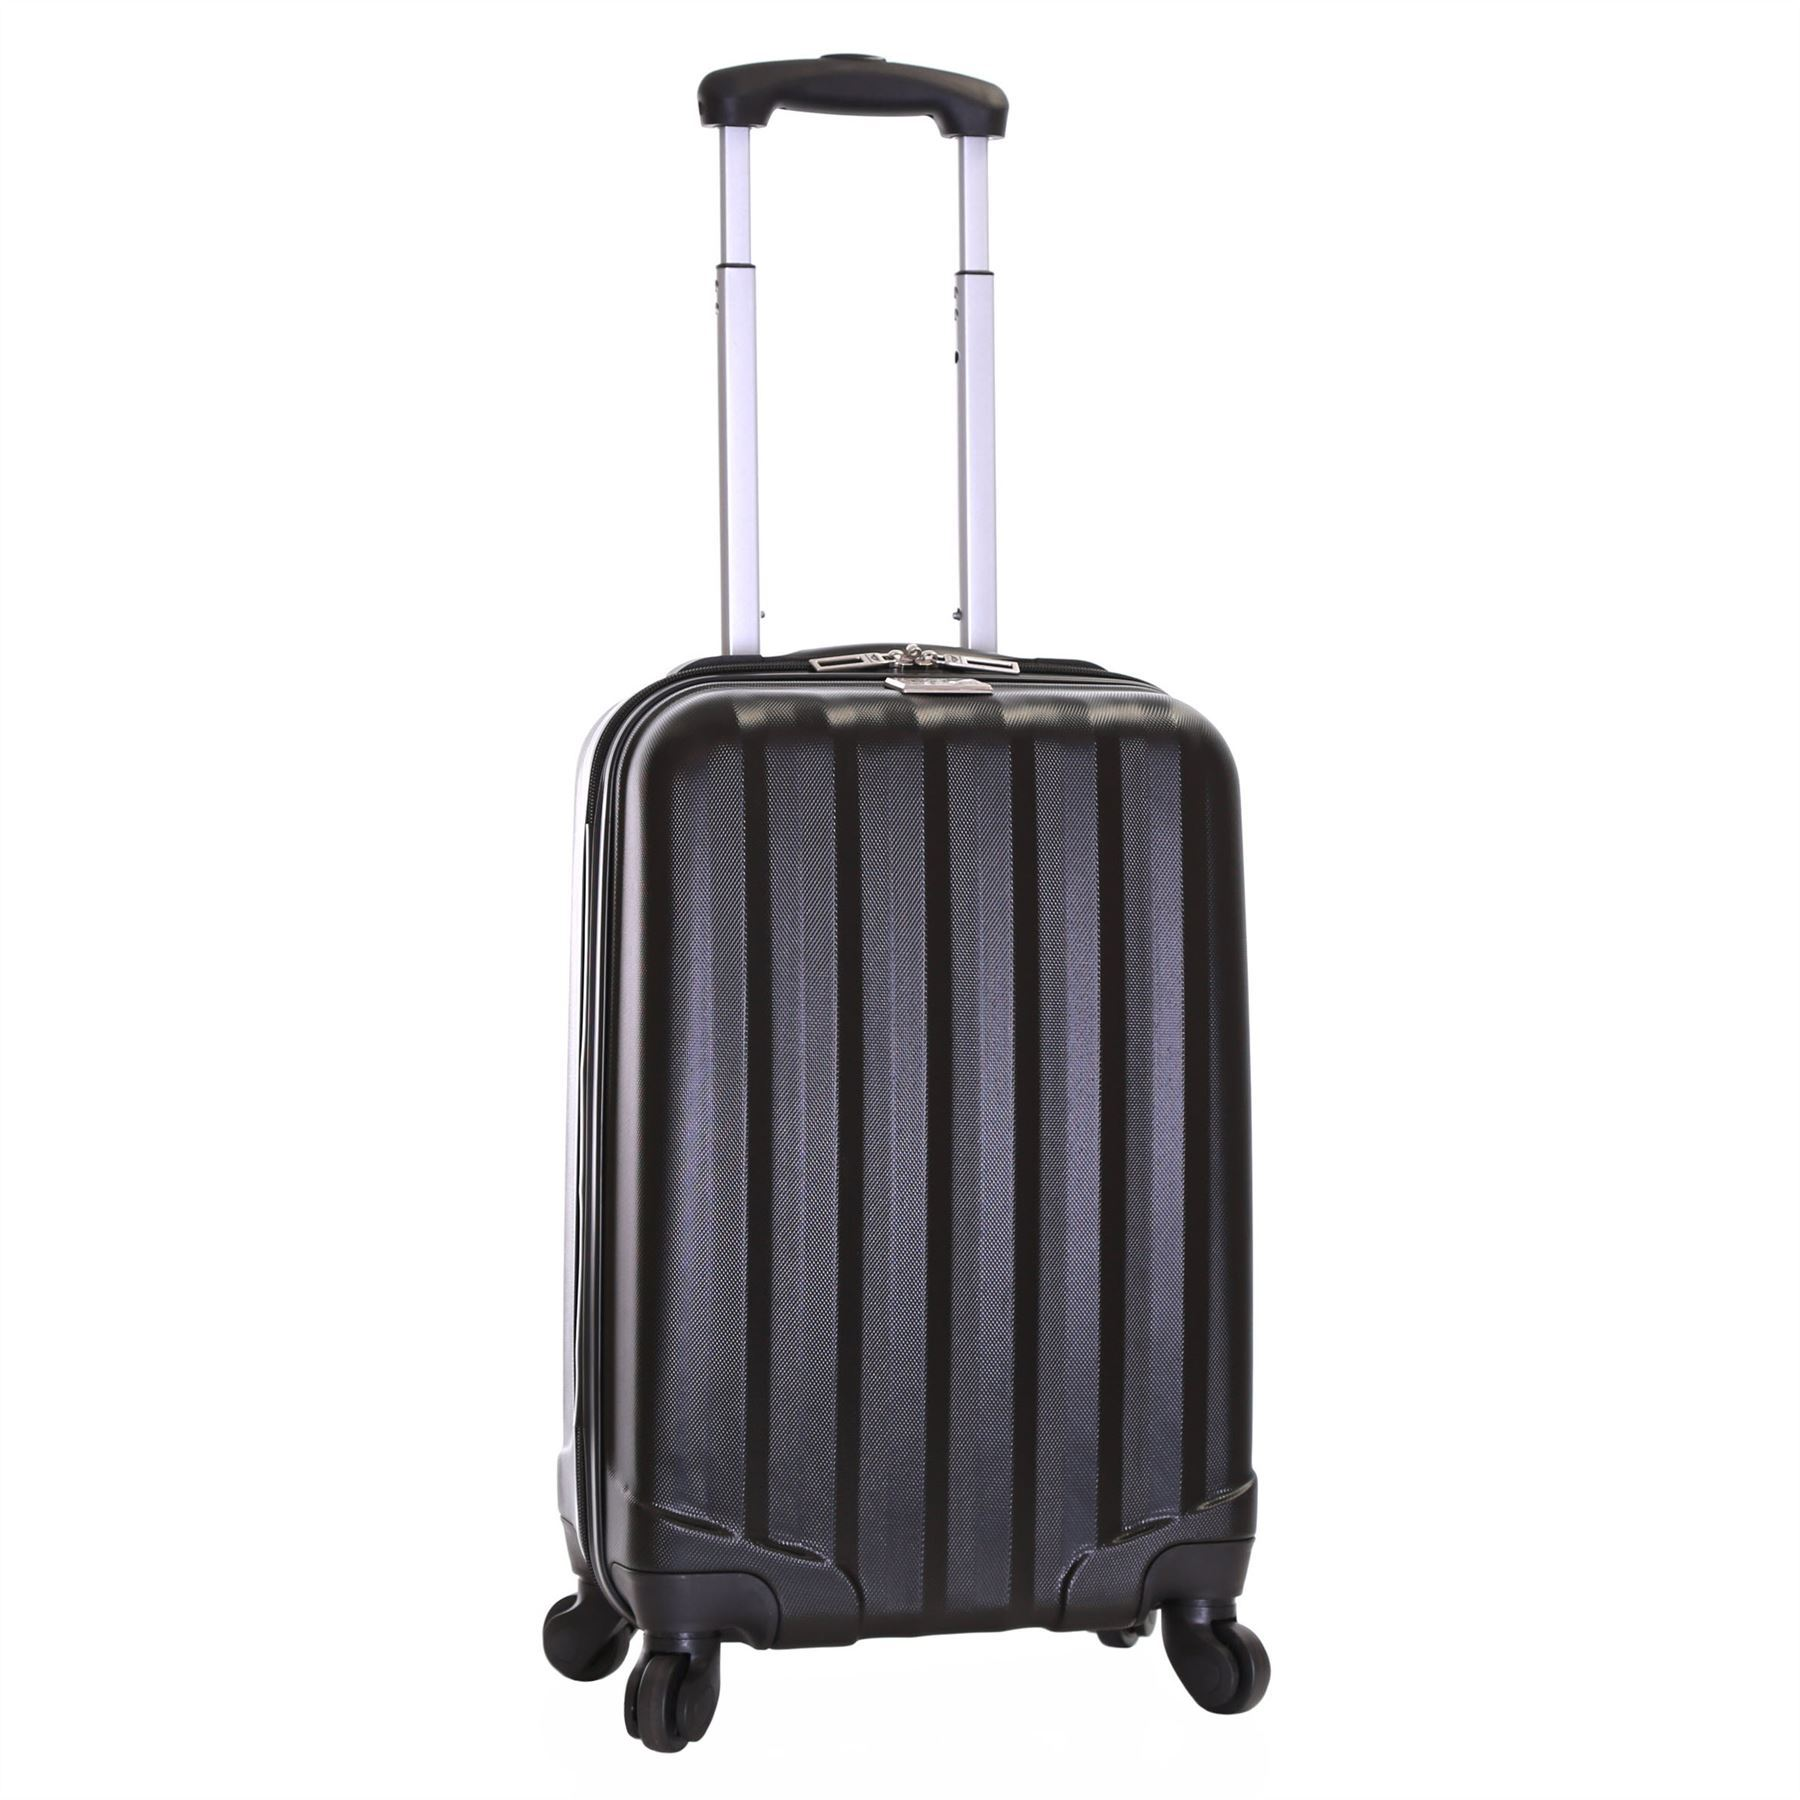 ryanair hard side cabin approved spinner trolley hand luggage suitcase bag case ebay. Black Bedroom Furniture Sets. Home Design Ideas